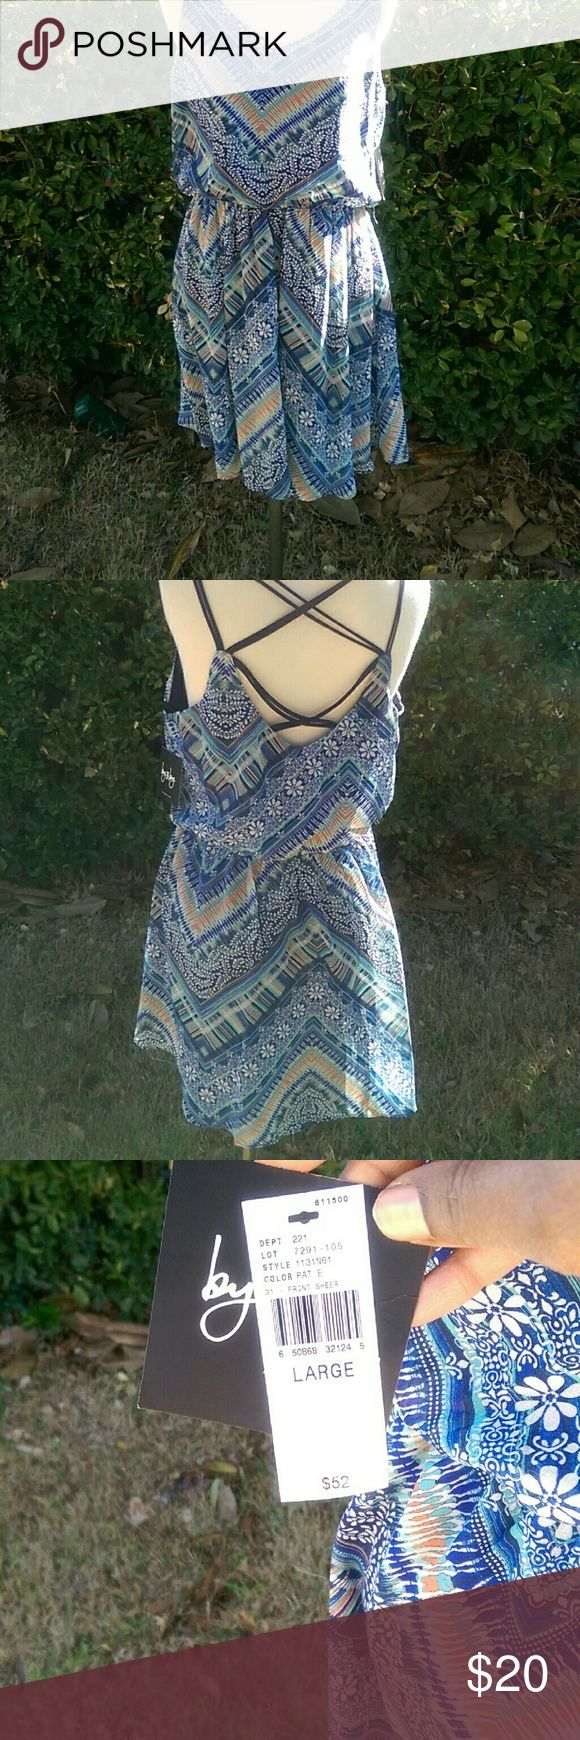 Dress Multi color summer dress great for outdoor summer fun. by and by Dresses Mini